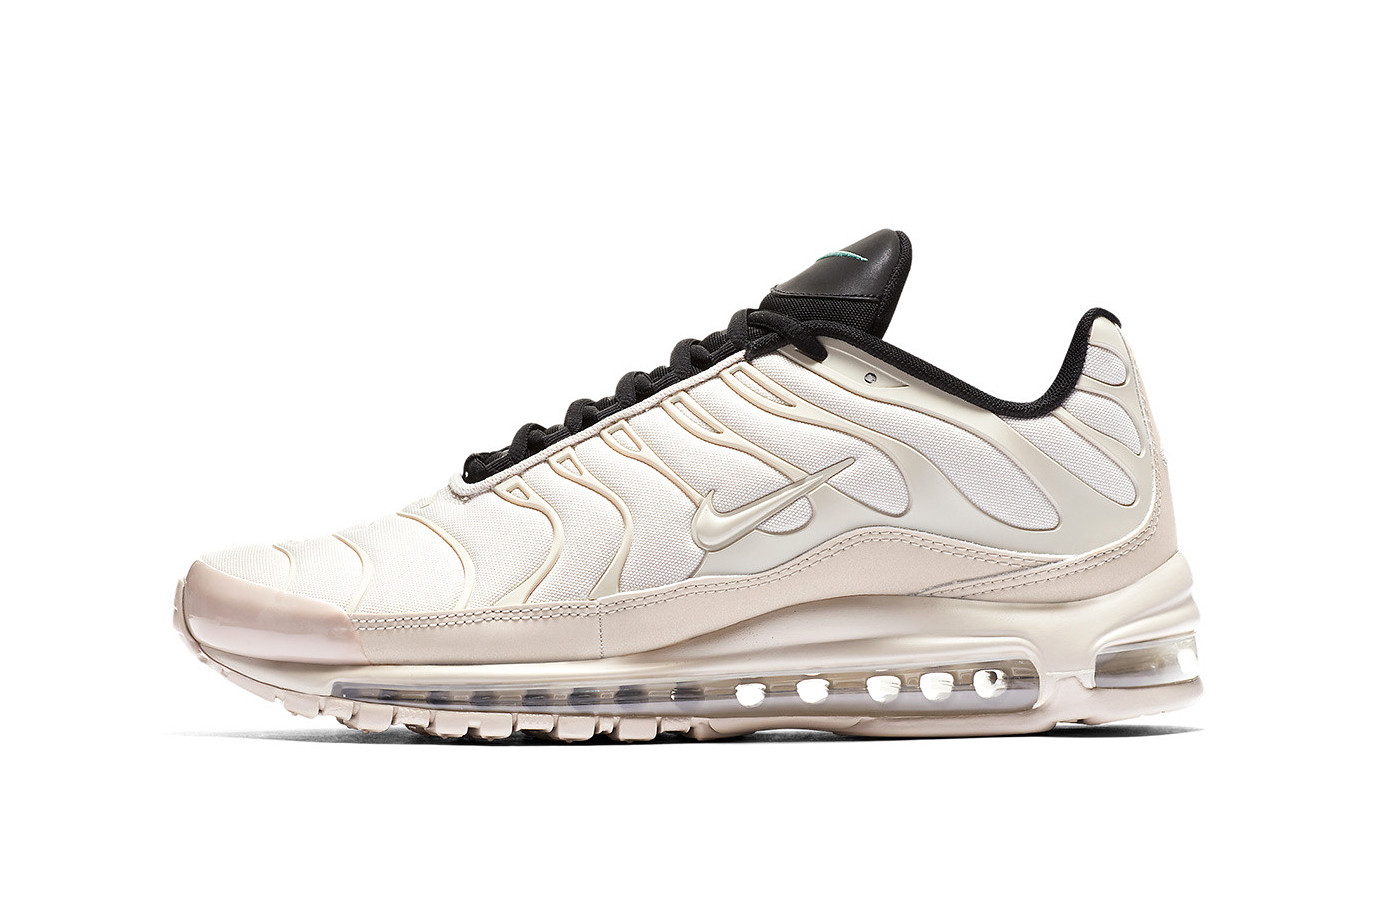 Nike Releases Air Max Plus 97 in